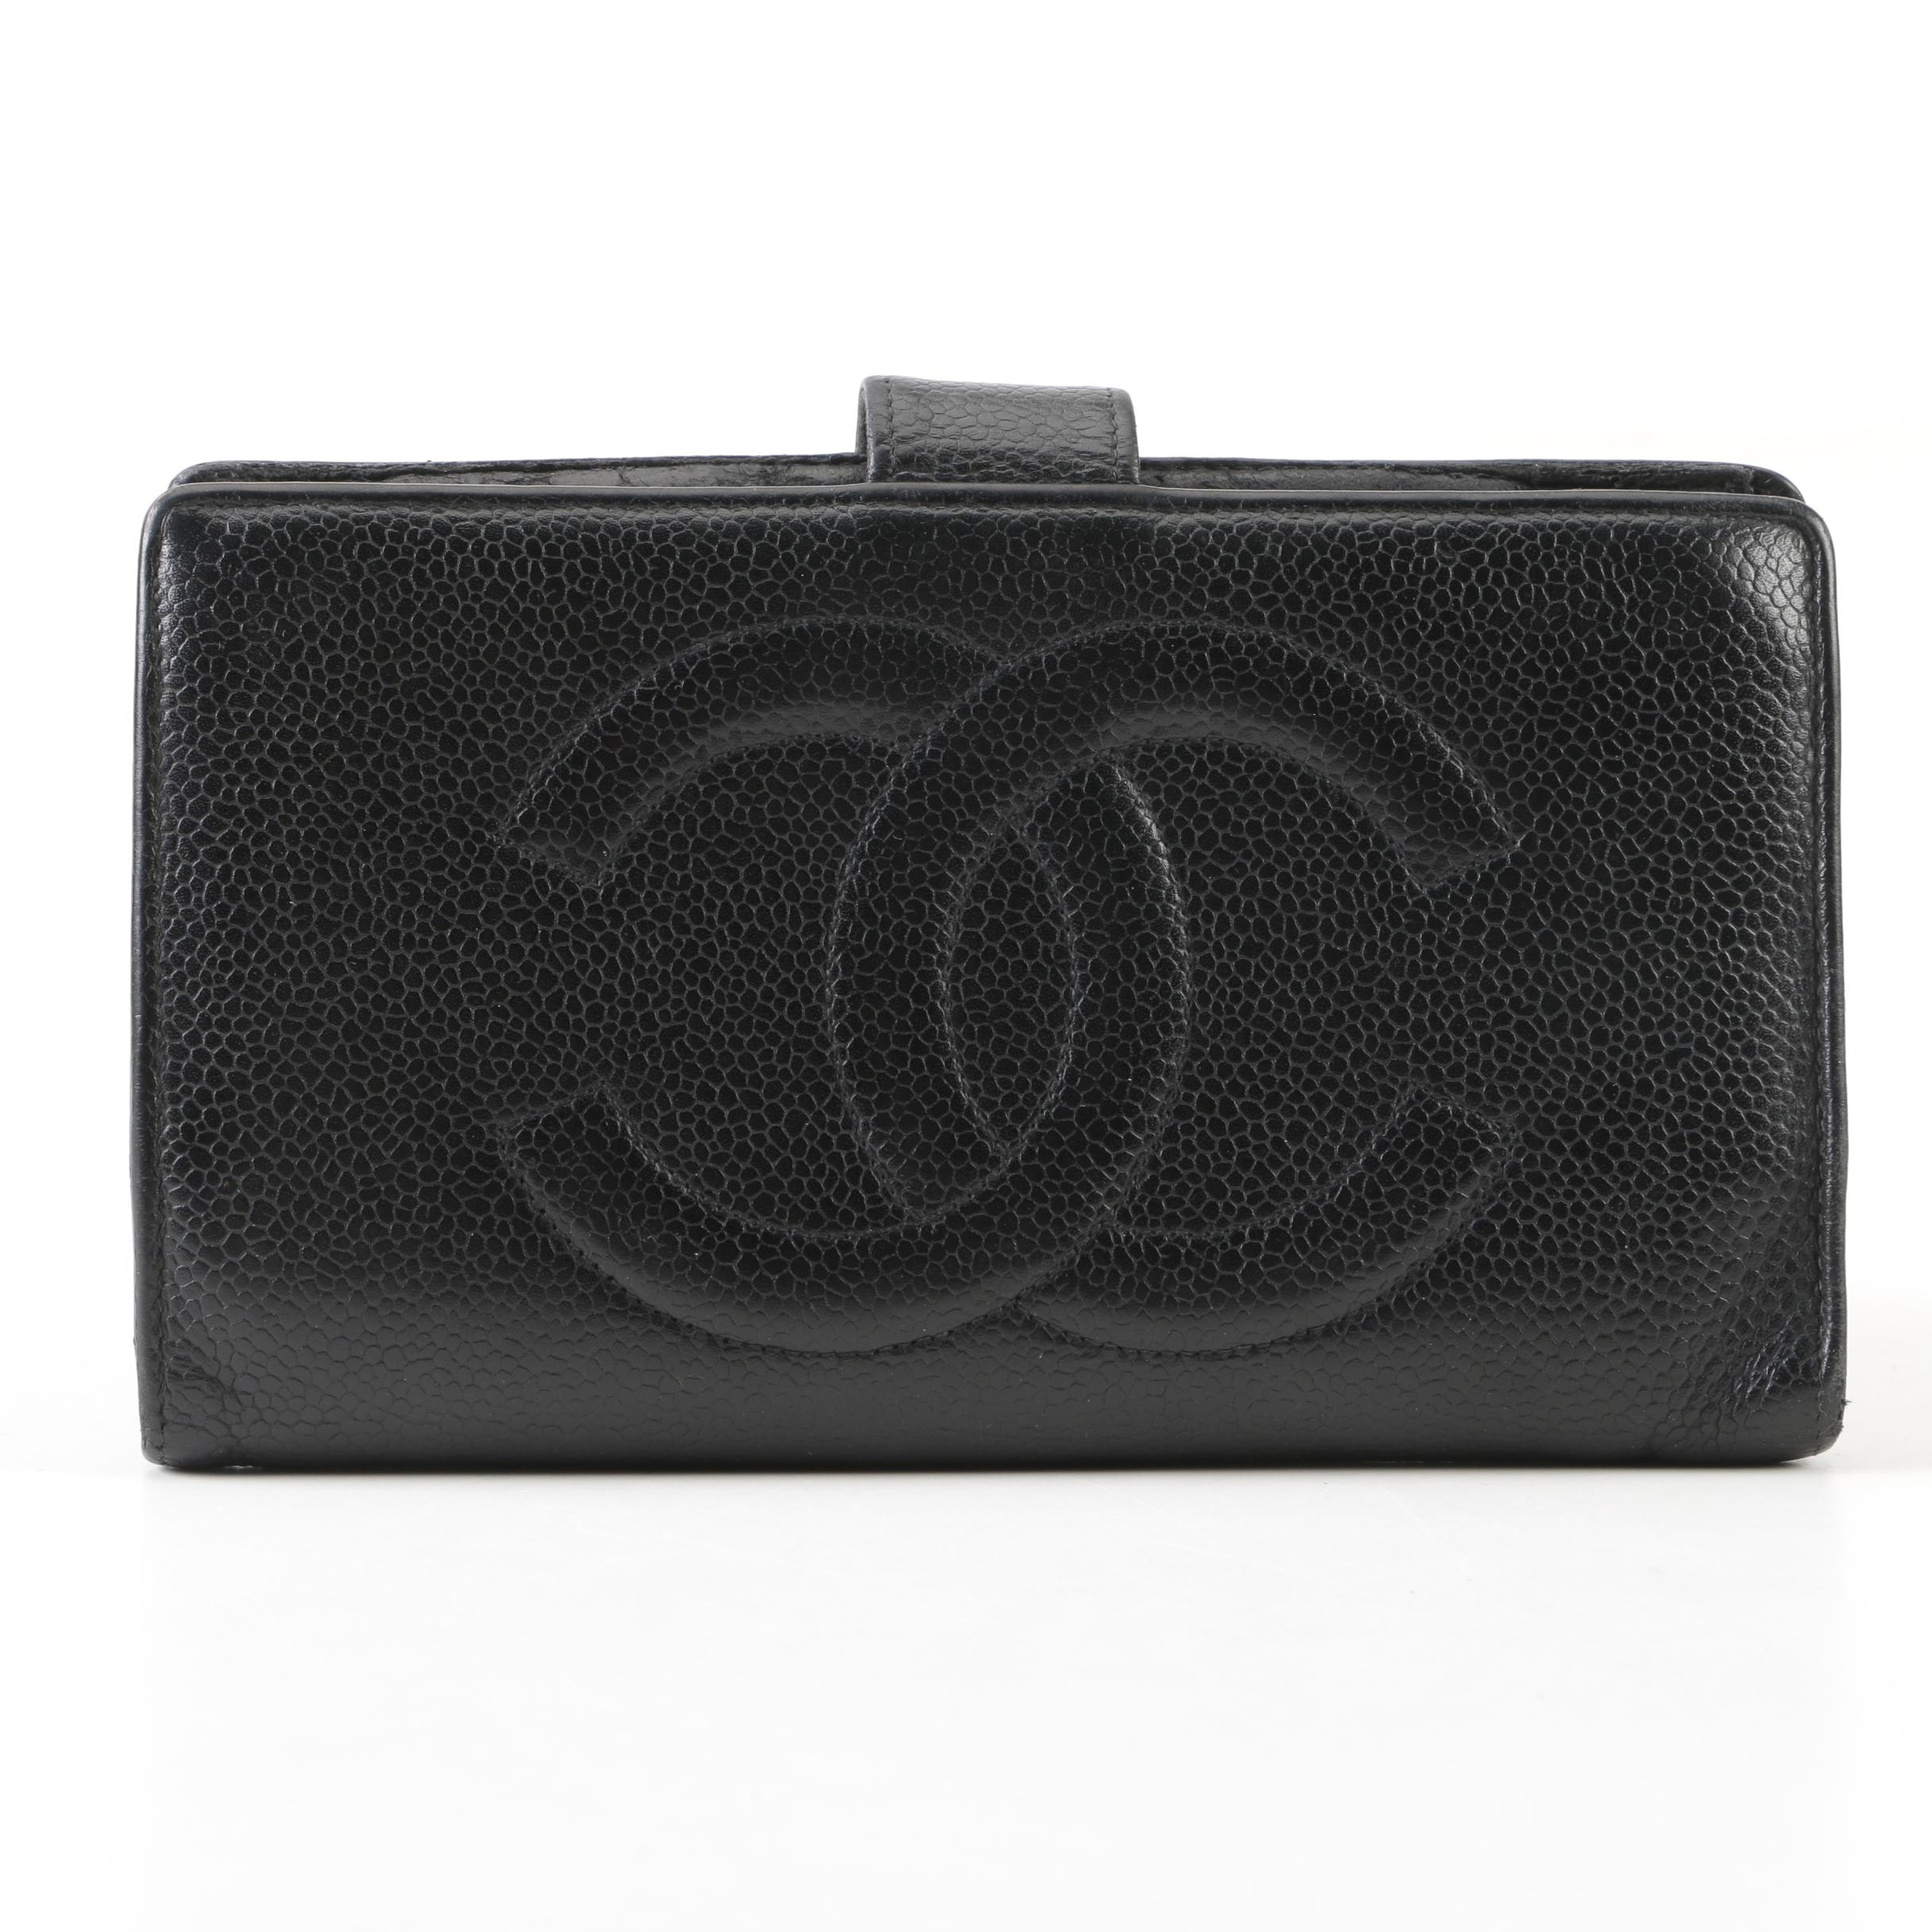 Chanel CC Black Caviar Leather Bifold Wallet, Made in France